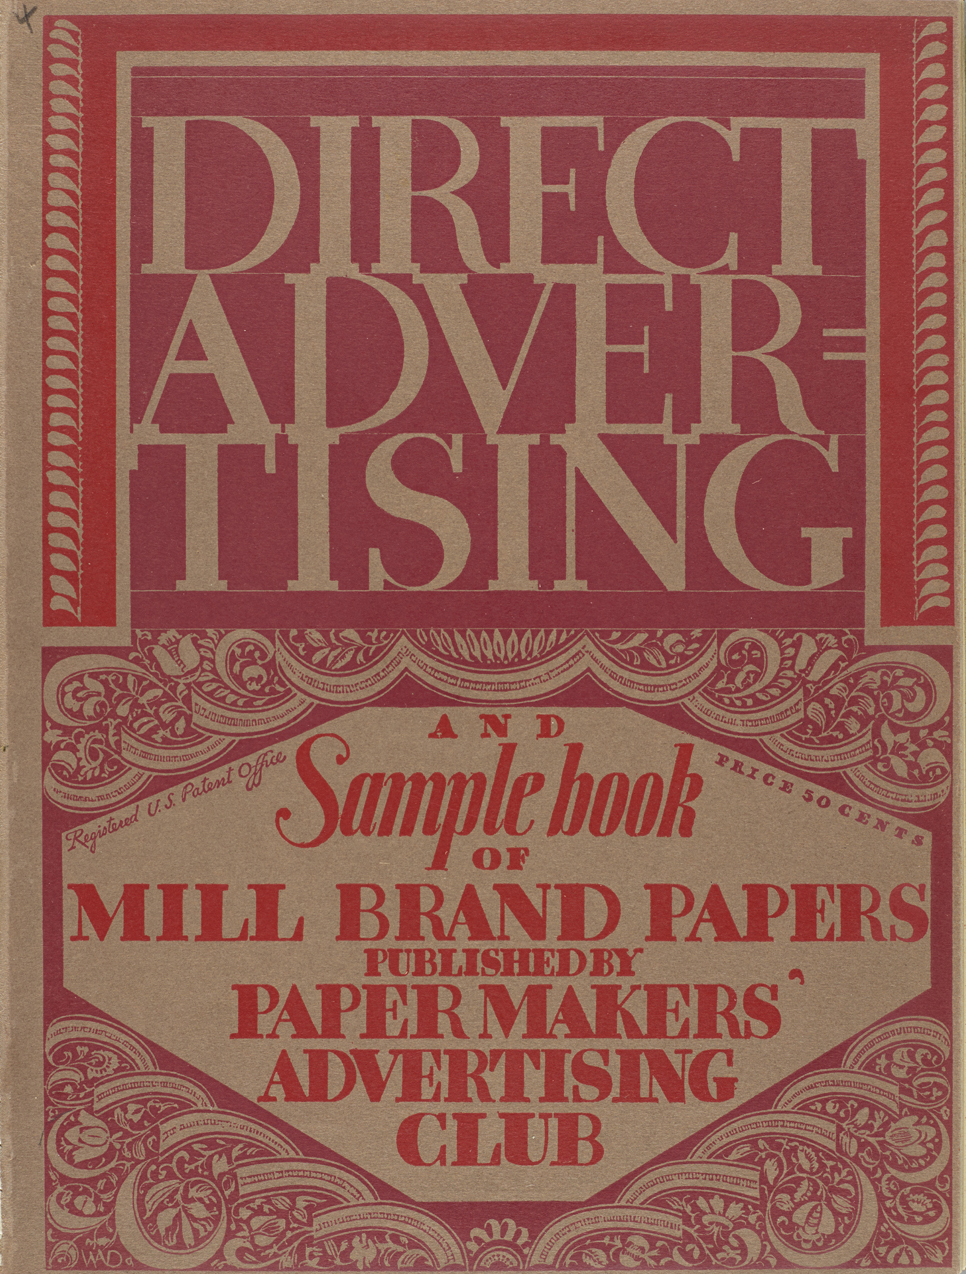 Cover of Direct Advertising, vol. XII, no. 4 (1926). Design by W.A. Dwiggins.